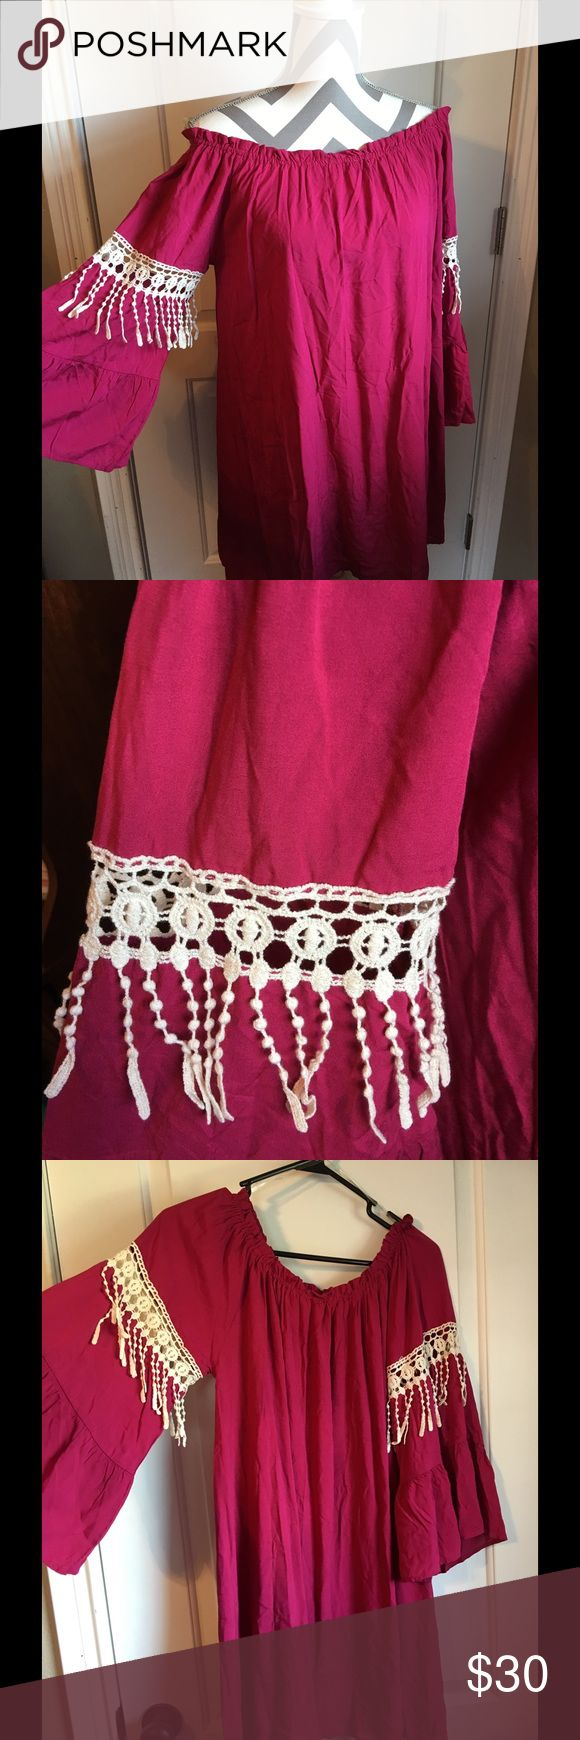 NWT Umgee Red Tunic / Dress NWT Umgee Brand Tunic / Dress with bell sleeves and ivory crochet accent on both sleeves. Can be worn on or off the shoulder. Umgee Dresses